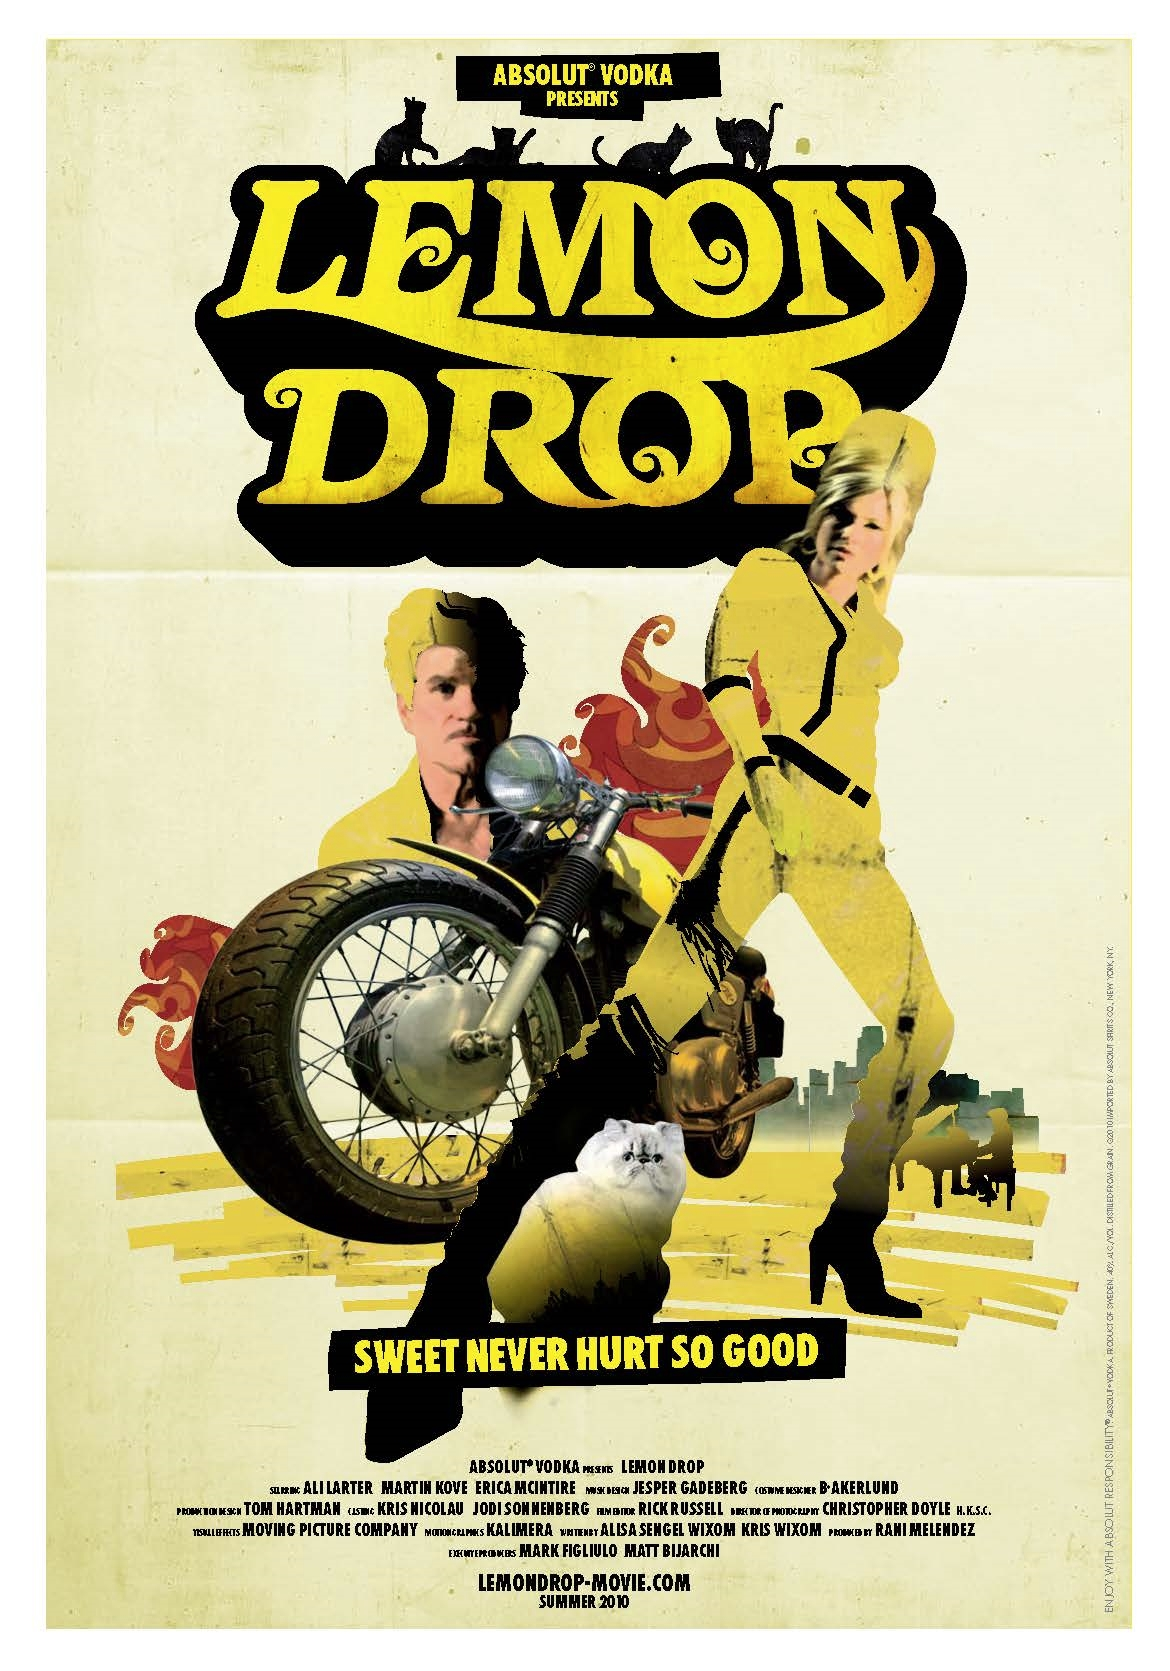 T1481_LEMONDROP_POSTER_M1_Final.jpg